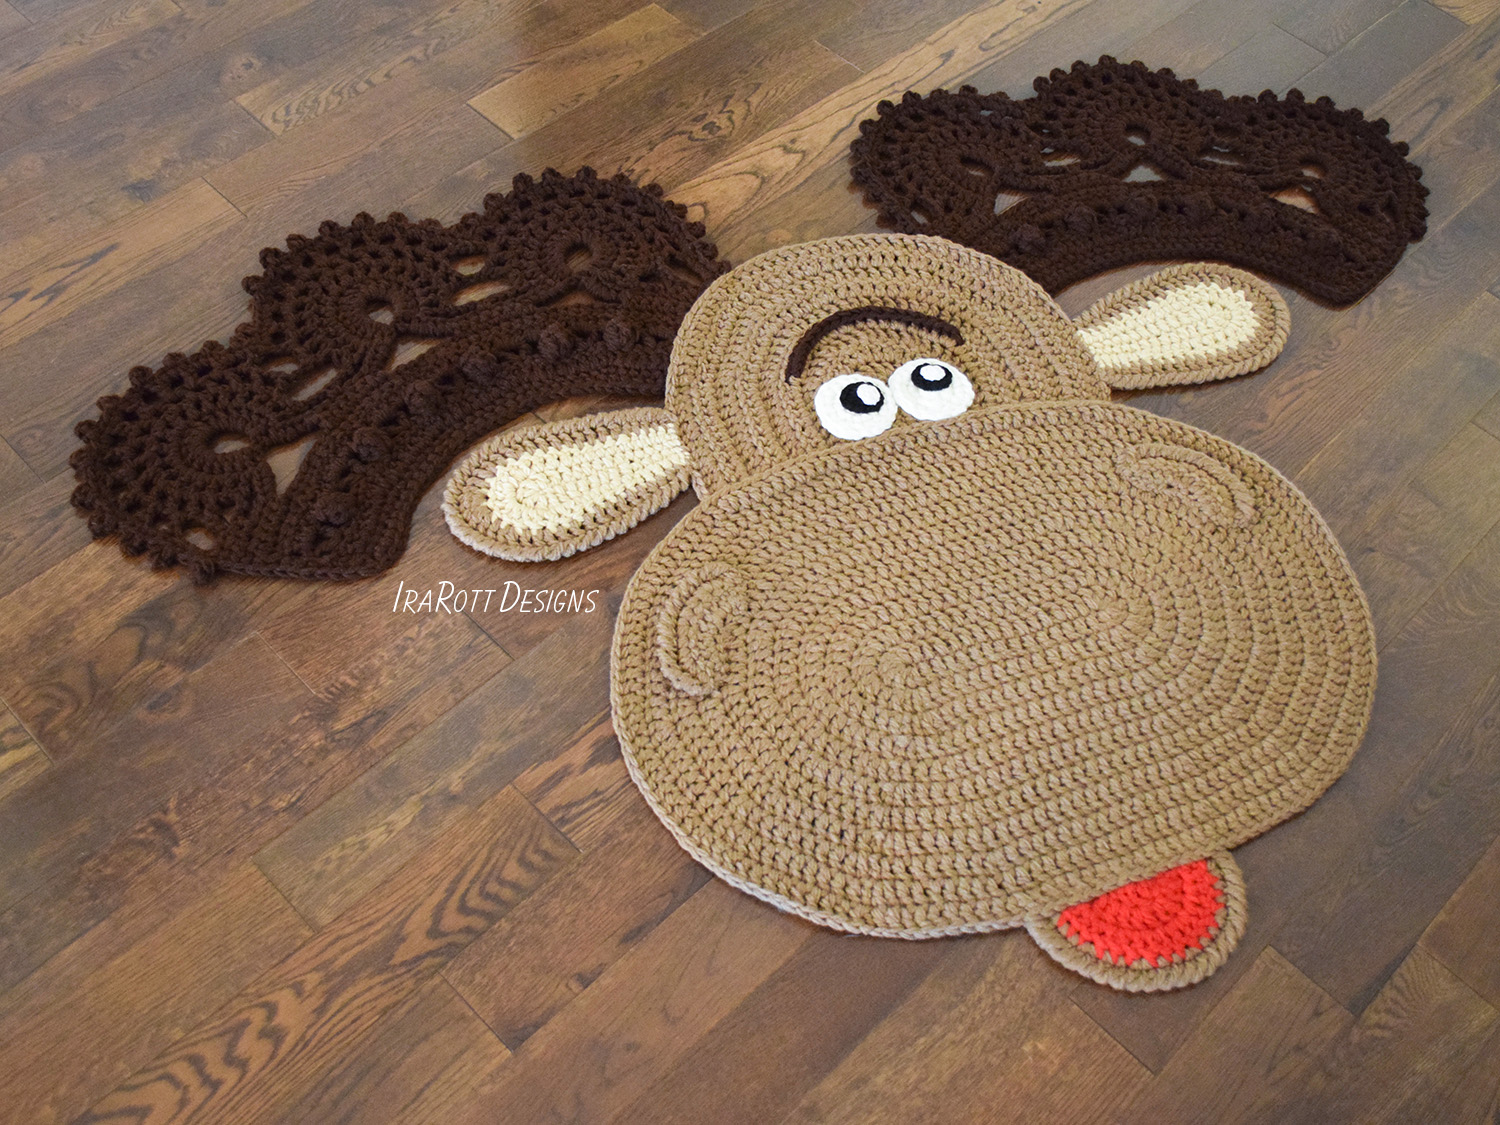 2a8d8347db6 Crochet pattern PDF by IraRott for making an adorable moose rug or reading  mat for Christmas